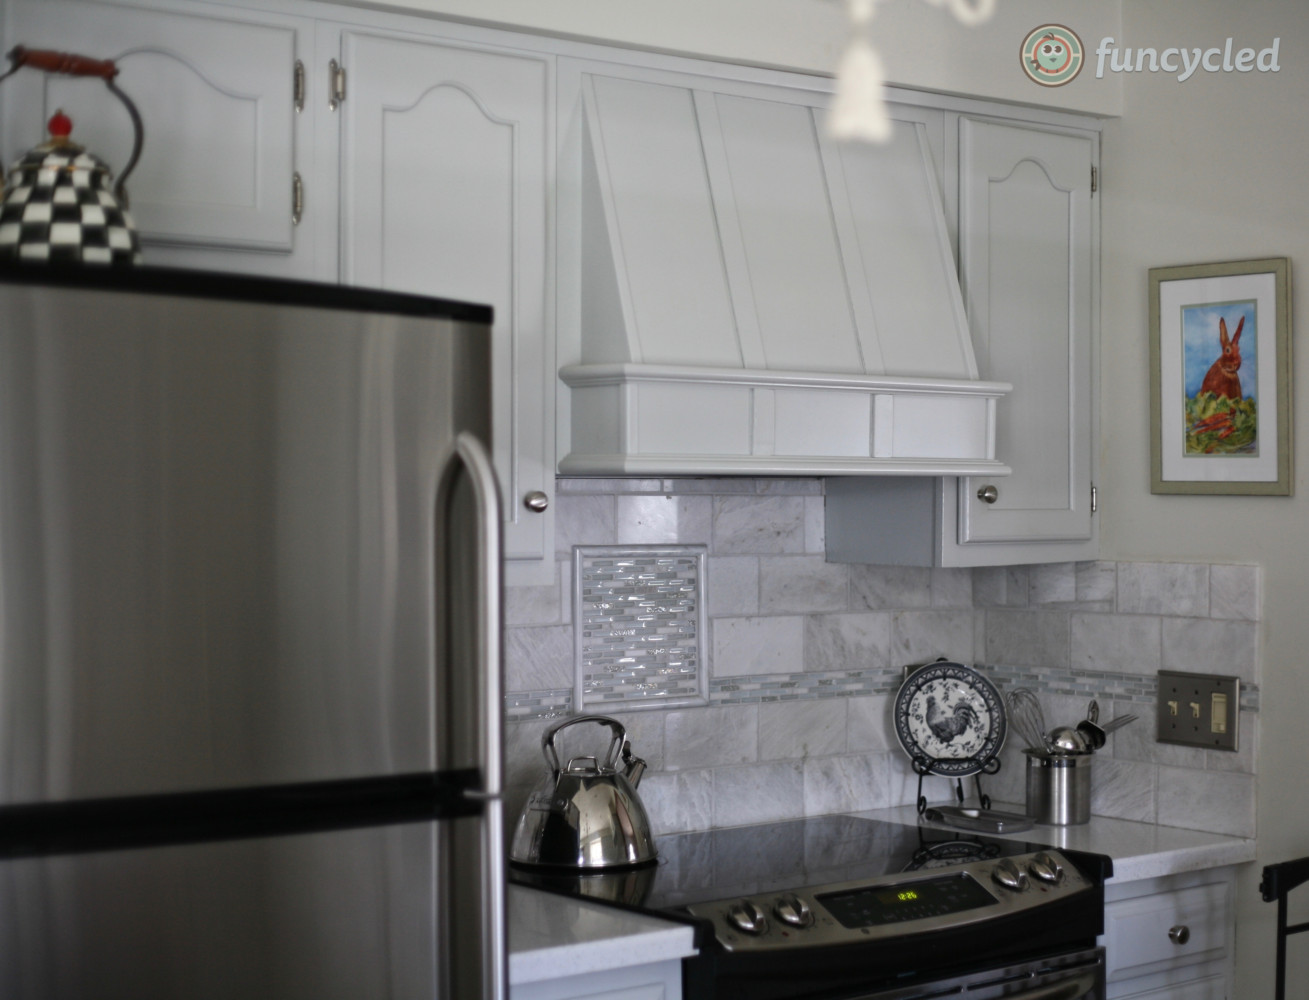 Kitchen Cabinet Painted Cliffside Gray Tuesday S Treasures Funcycled